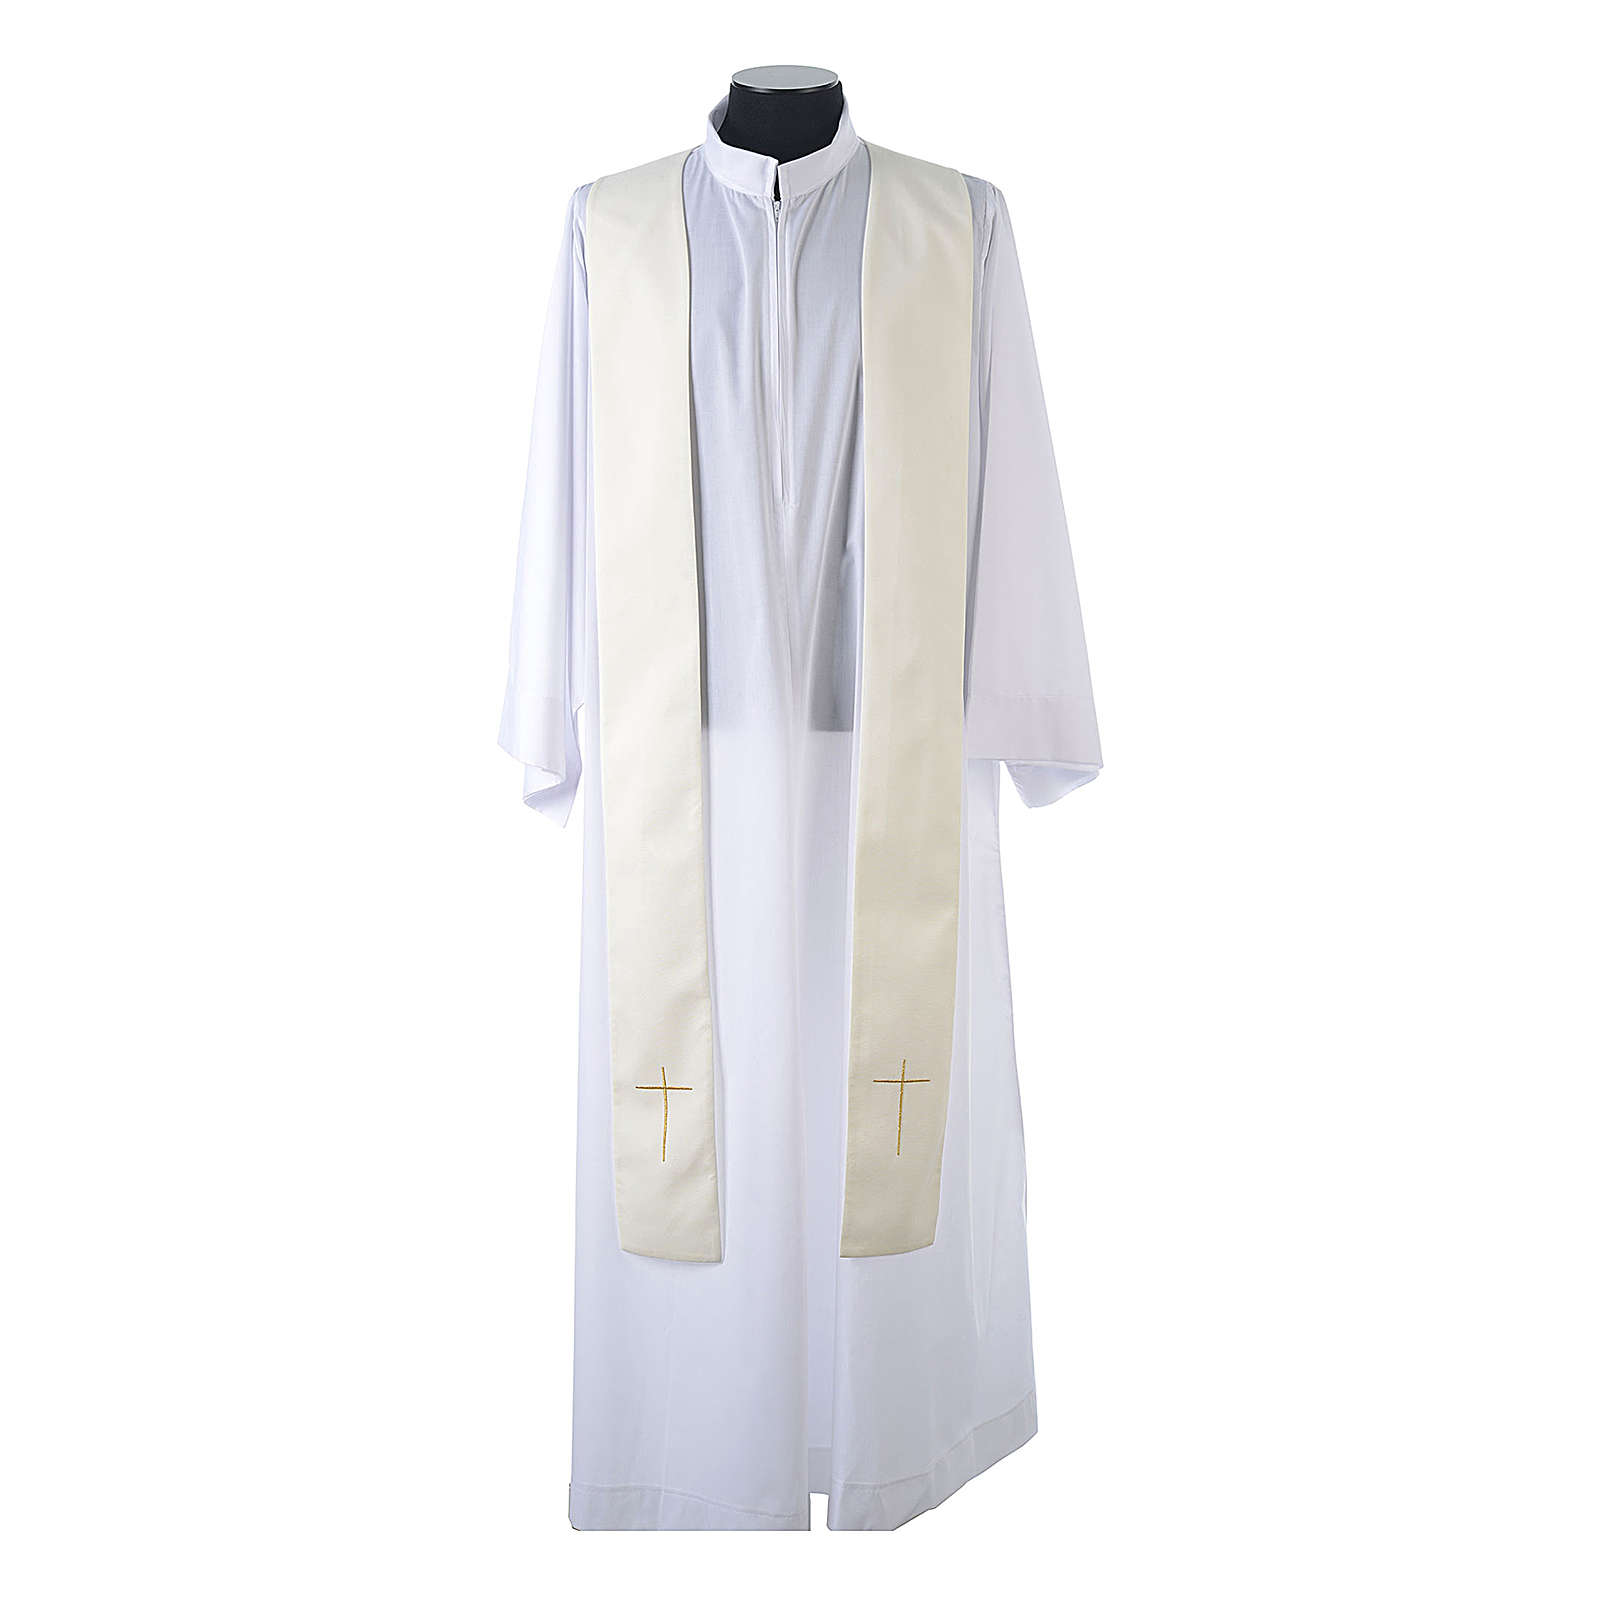 Monastic Chasuble in 80% polyester 20% wool, IHS, grapes and wheat embroidery 4